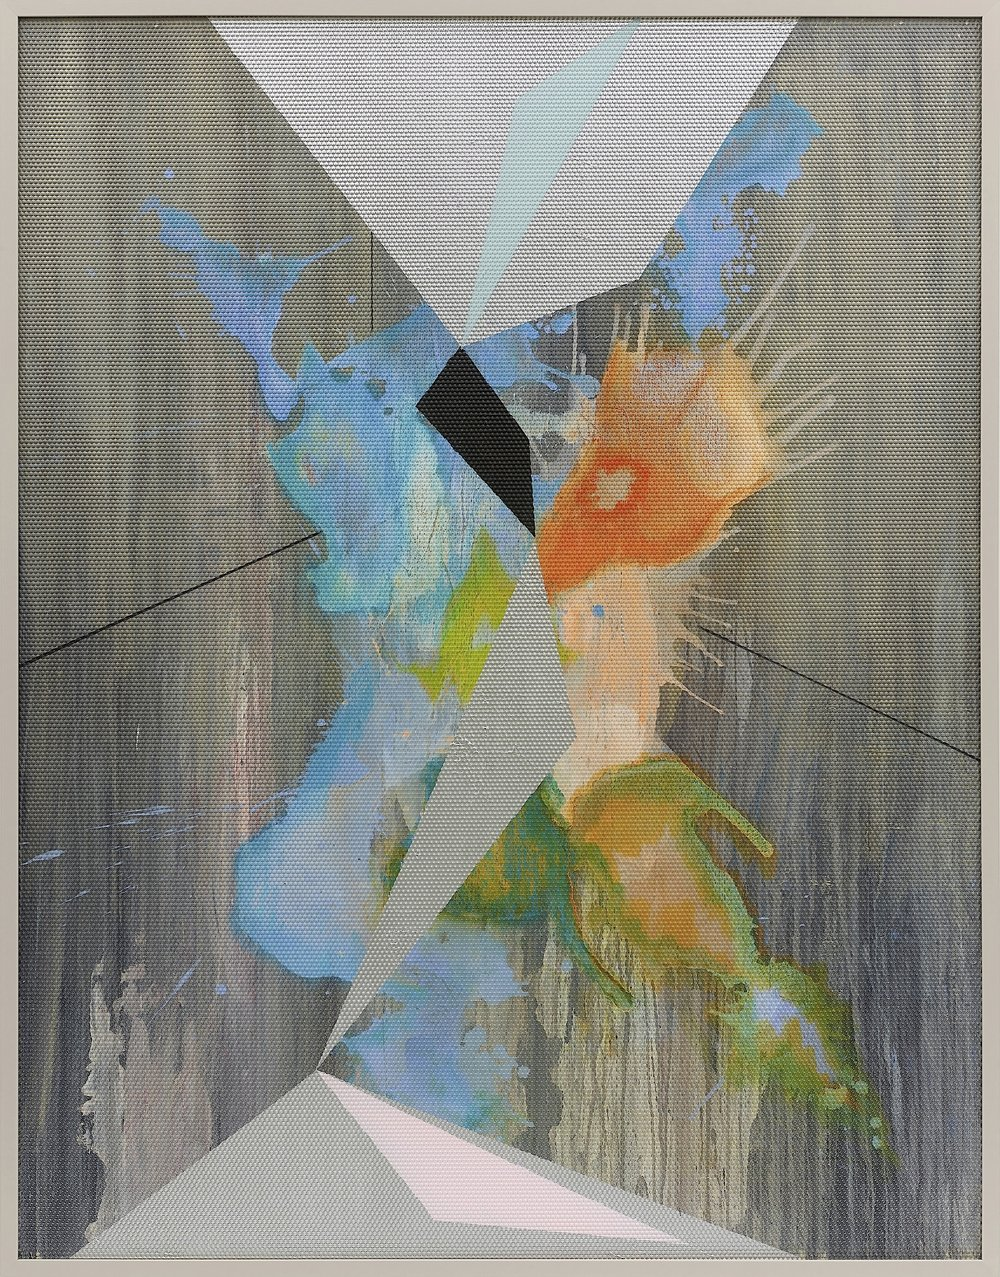 Eidolon / Part IV,  2012 Oil and acrylic on canvas beneath textured Plexiglas 180 x 140 cm (71 x 55 in)